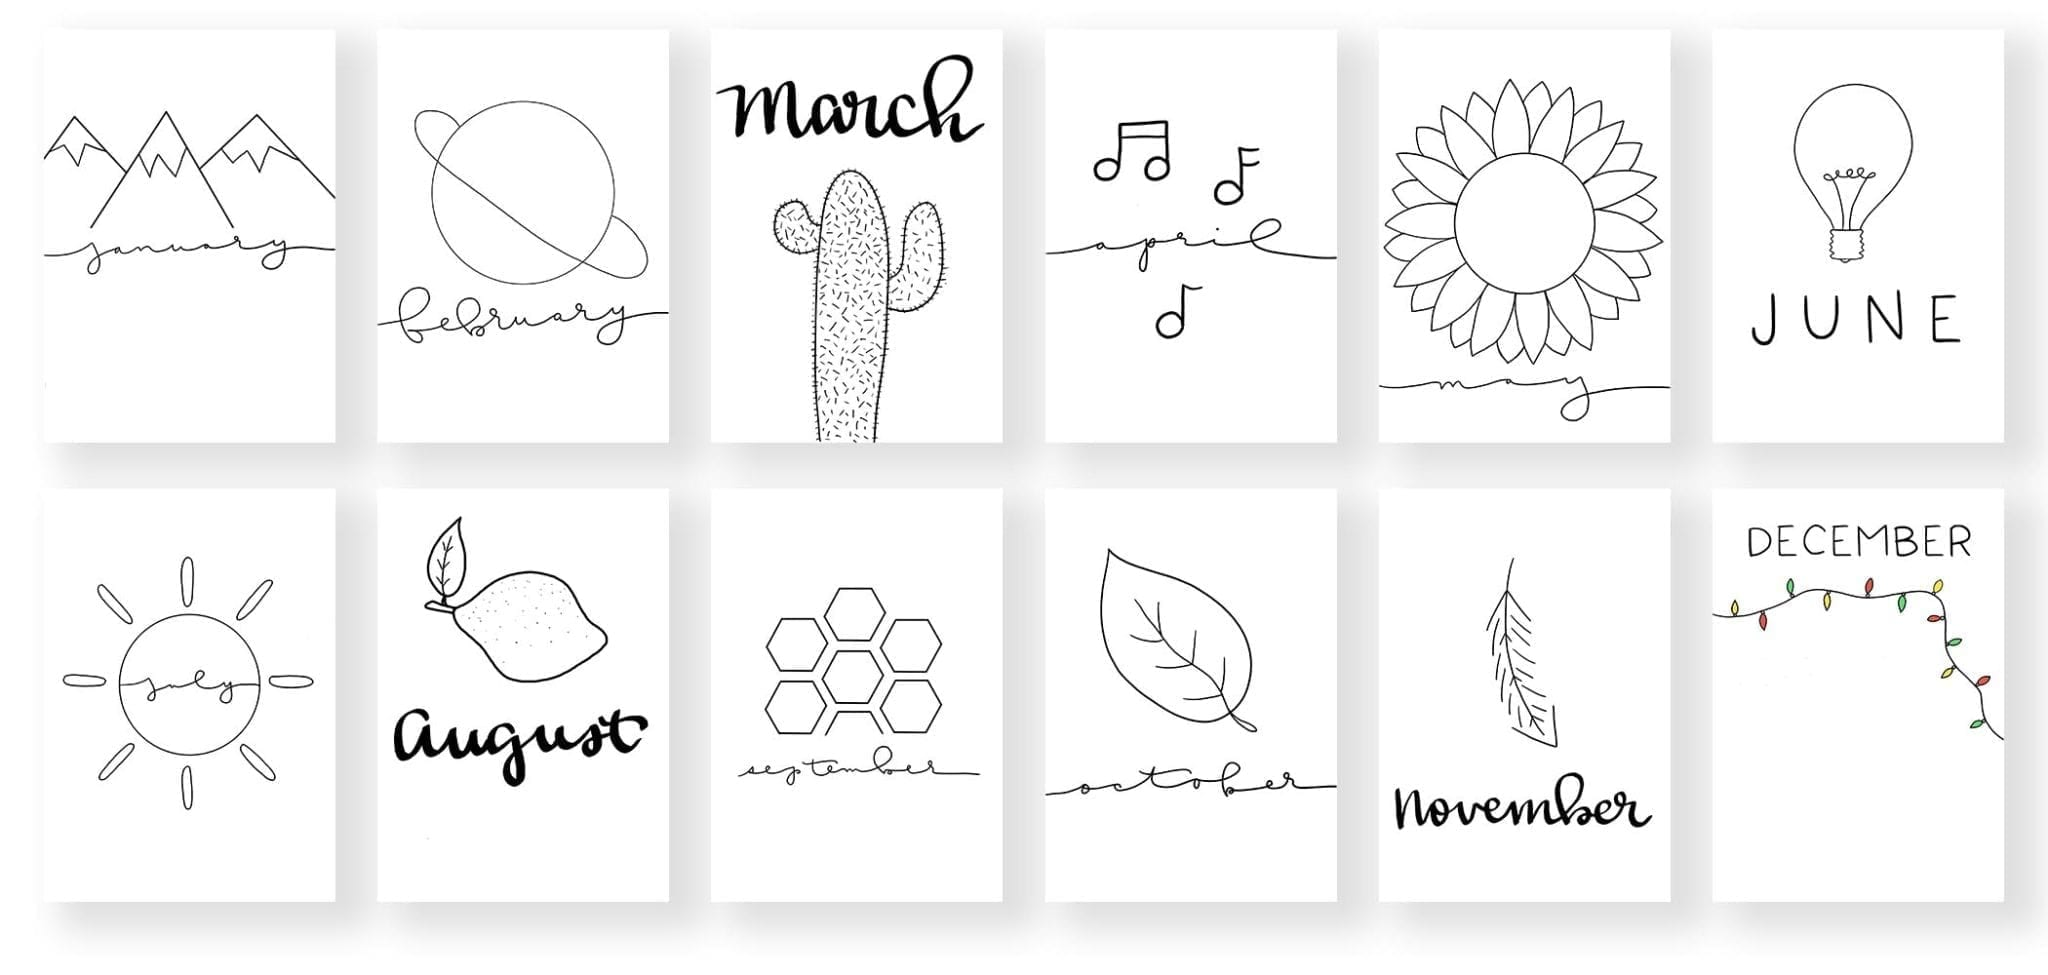 product banner- two rows of 6 mockups-one mockup for each page